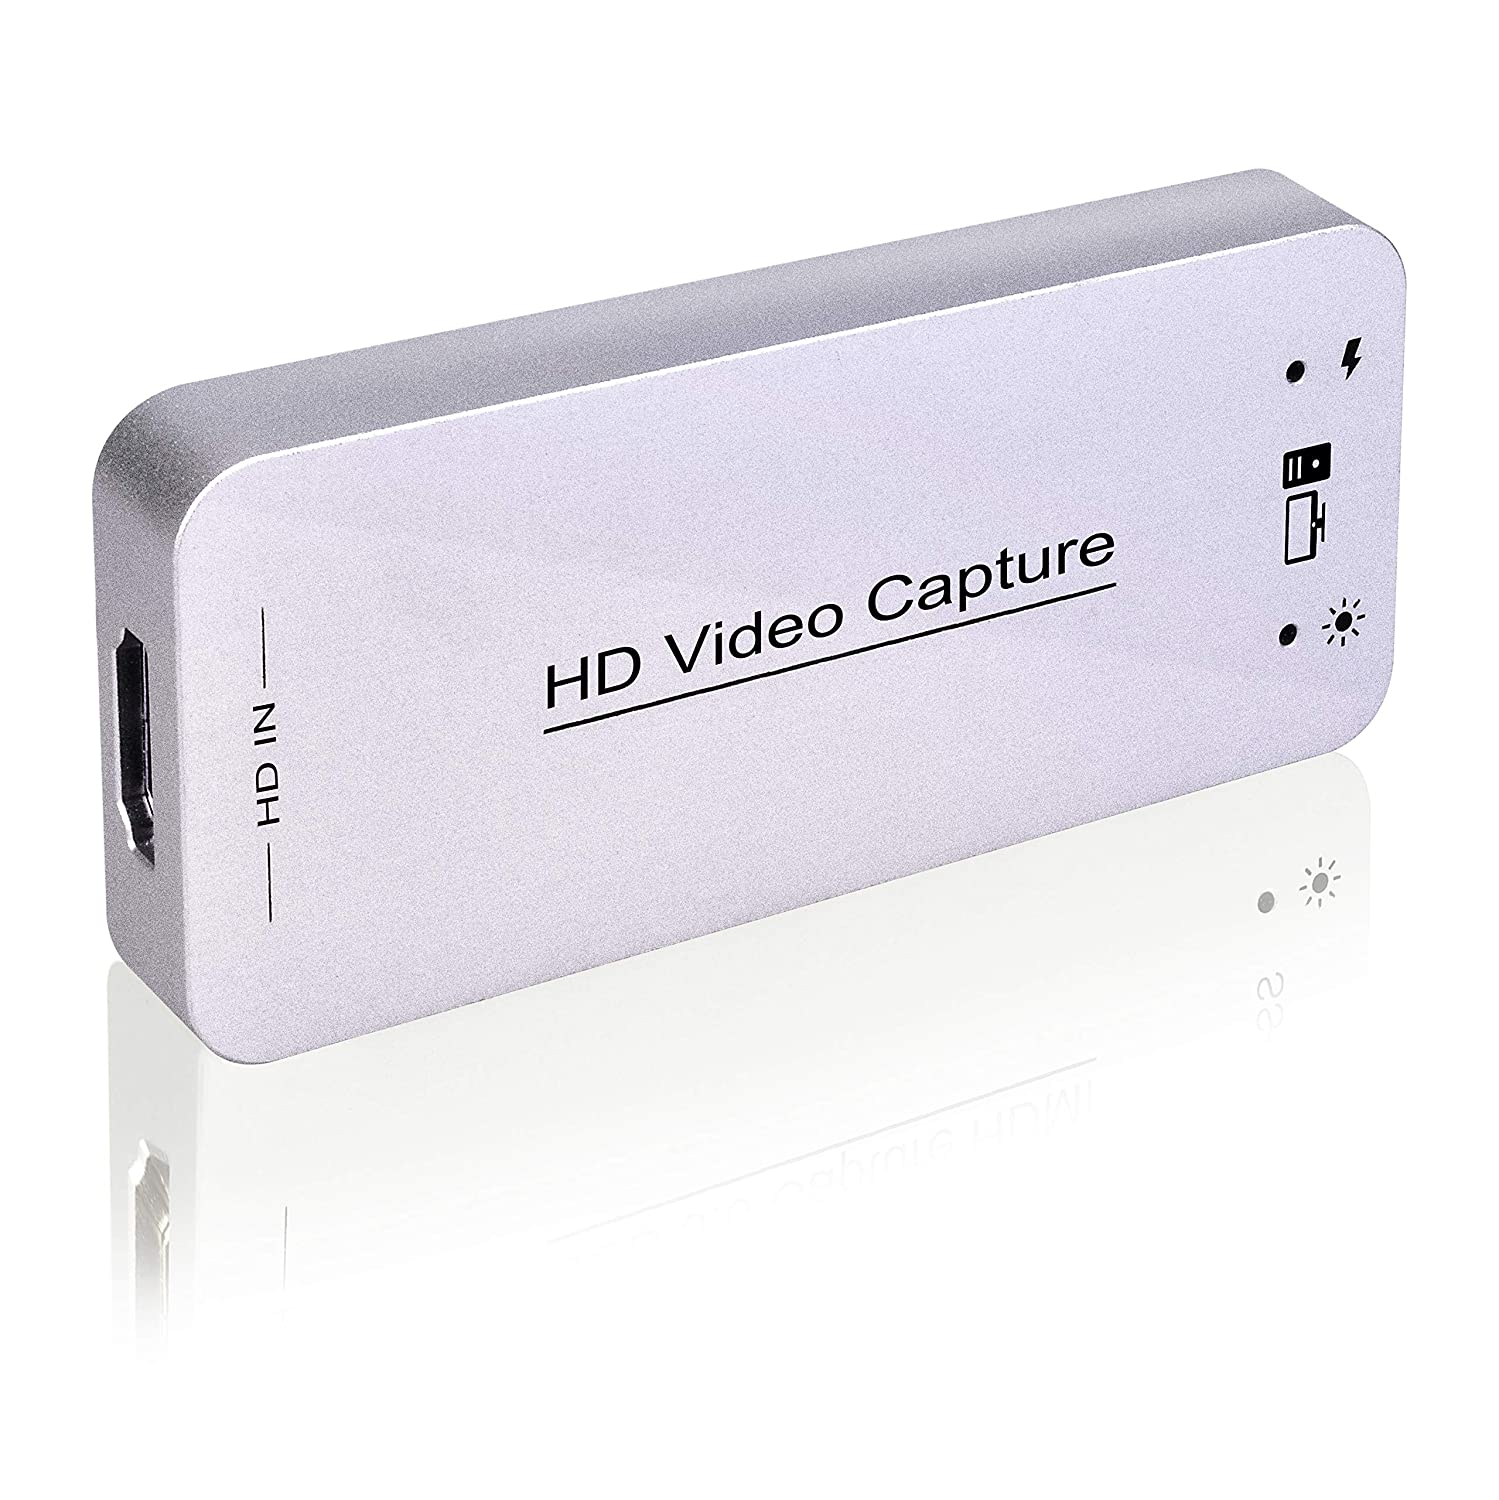 USB Capture HDMI Video Card, Broadcast Live Stream and Record, HDMI to USB Dongle Full HD 1080P Live Streaming Video Game Grabber Converter